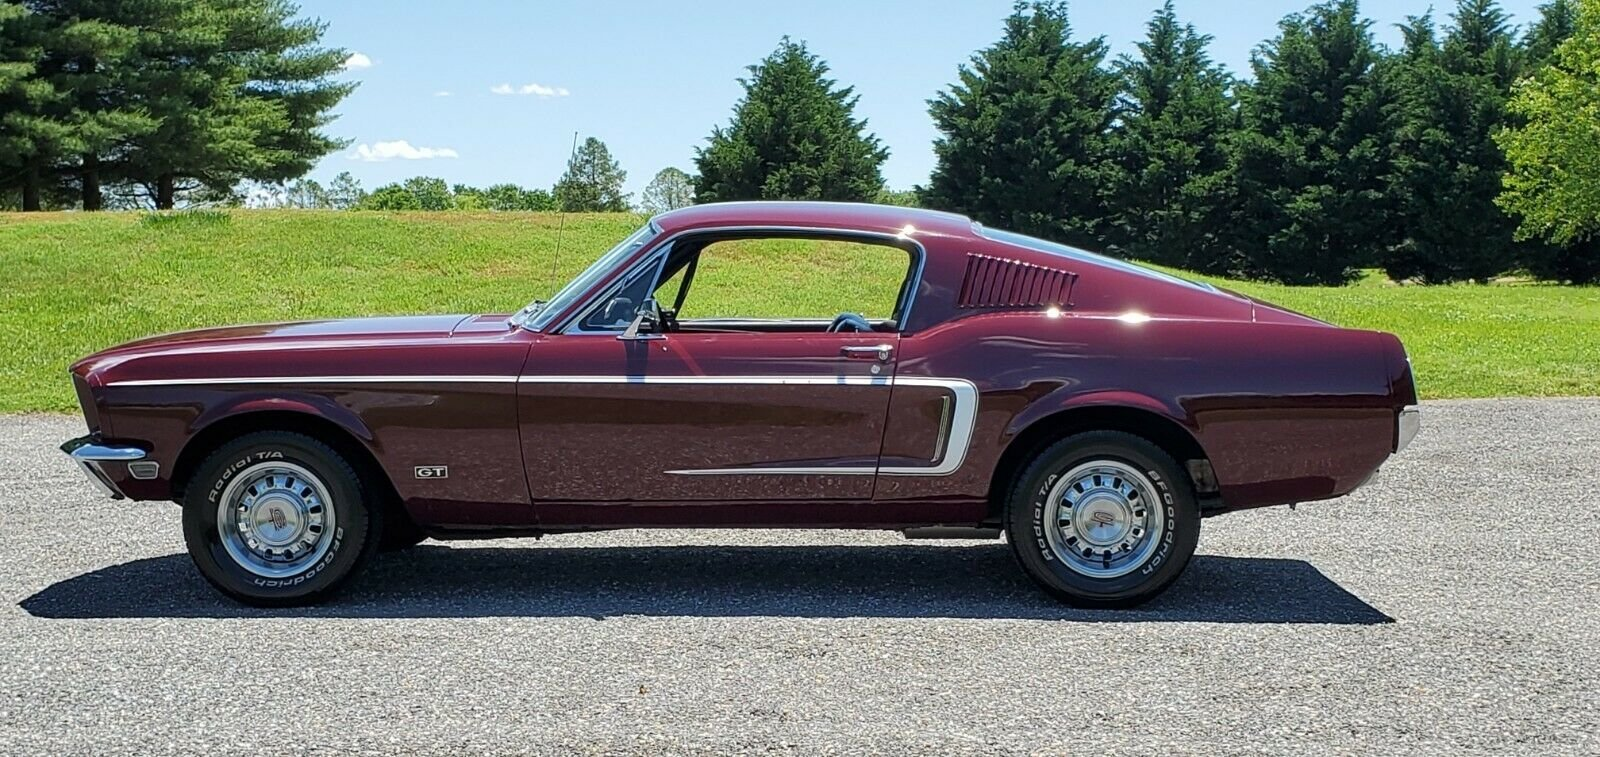 2019 1968 Ford Mustang Fastback Factory GT J code For Sale (picture 6 of 10)